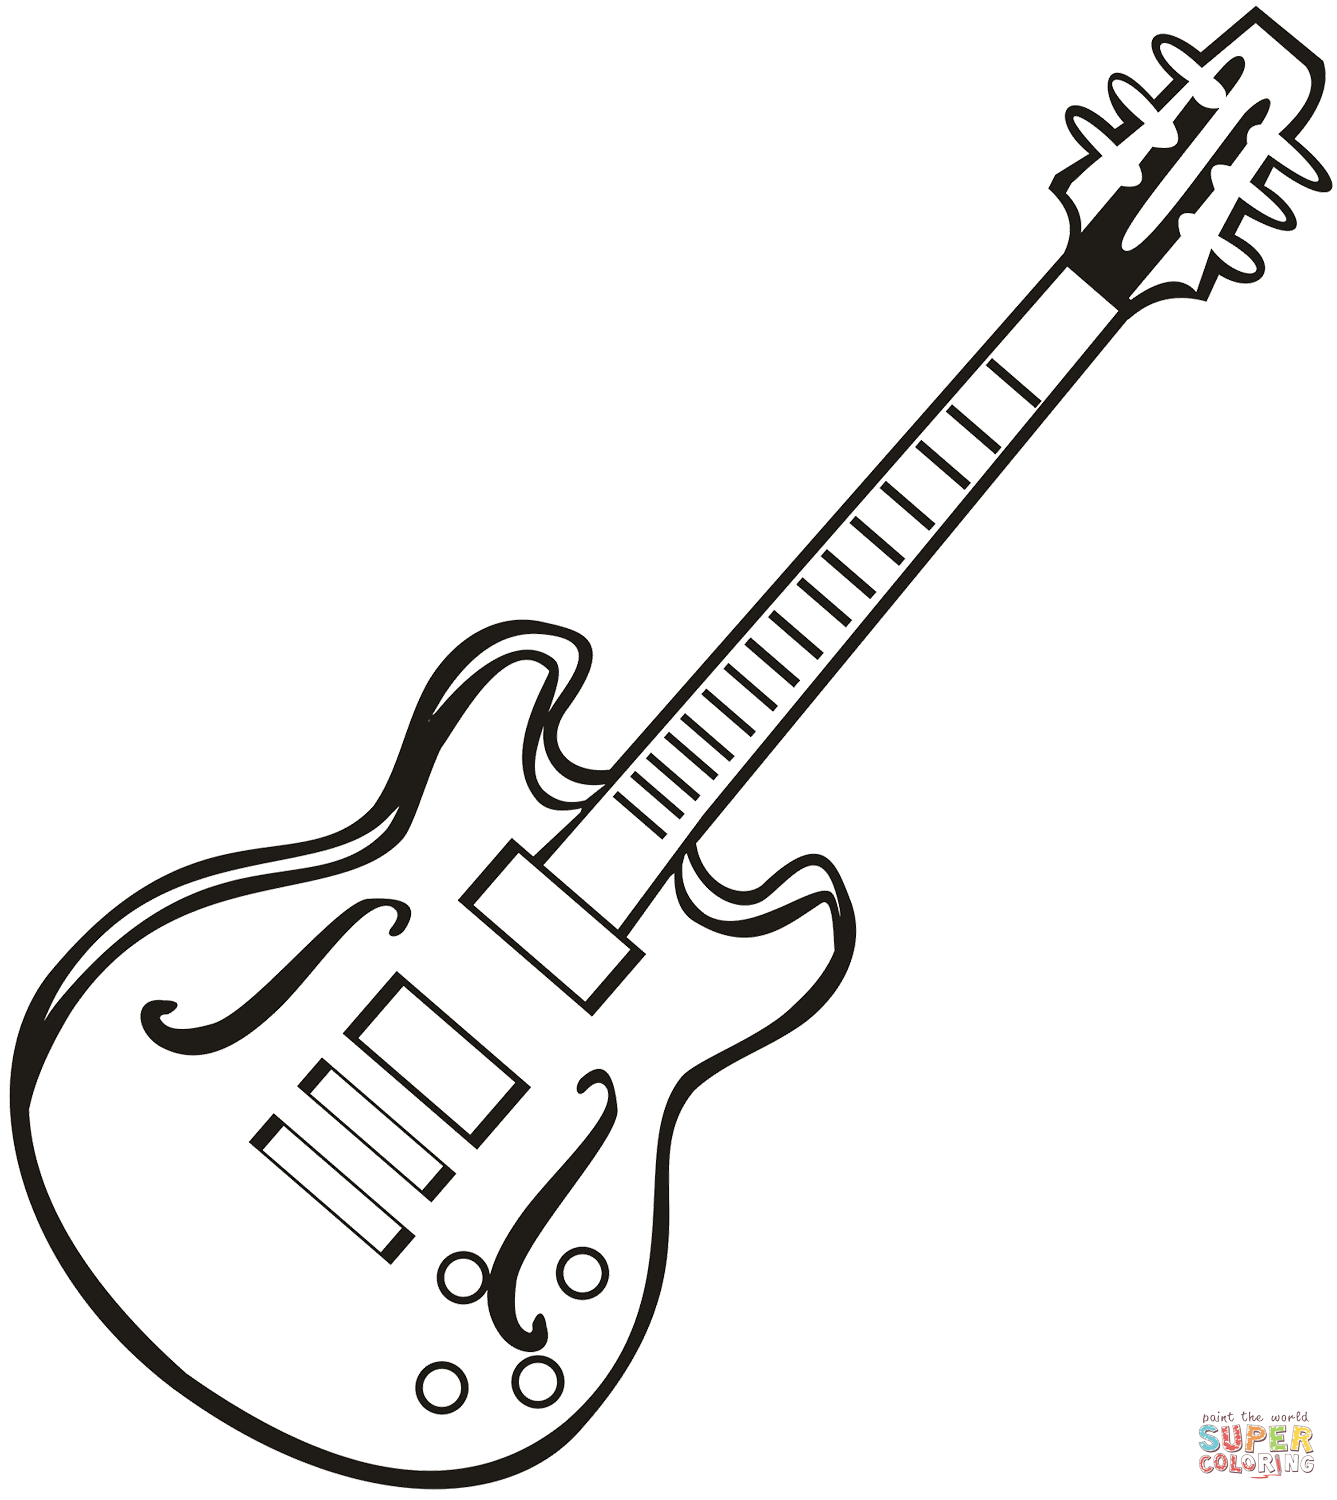 electric guitar coloring page electric guitar coloring page free printable coloring pages electric guitar page coloring